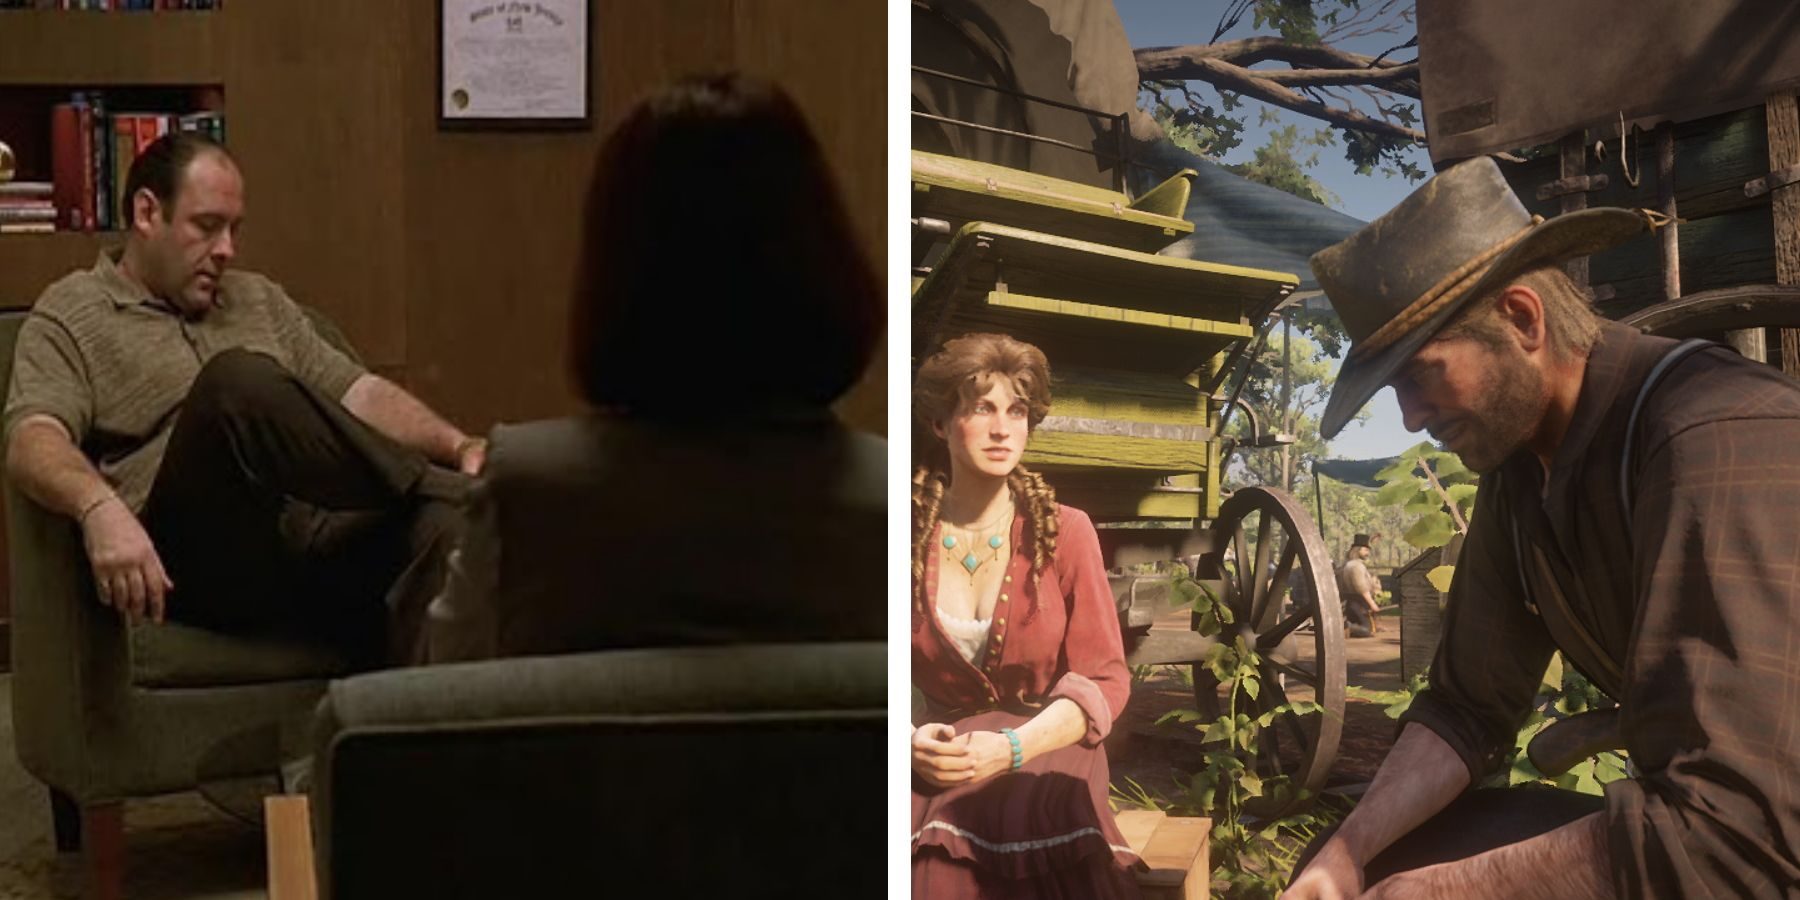 Red Dead Redemption 2 Shares Thematic DNA With The Sopranos